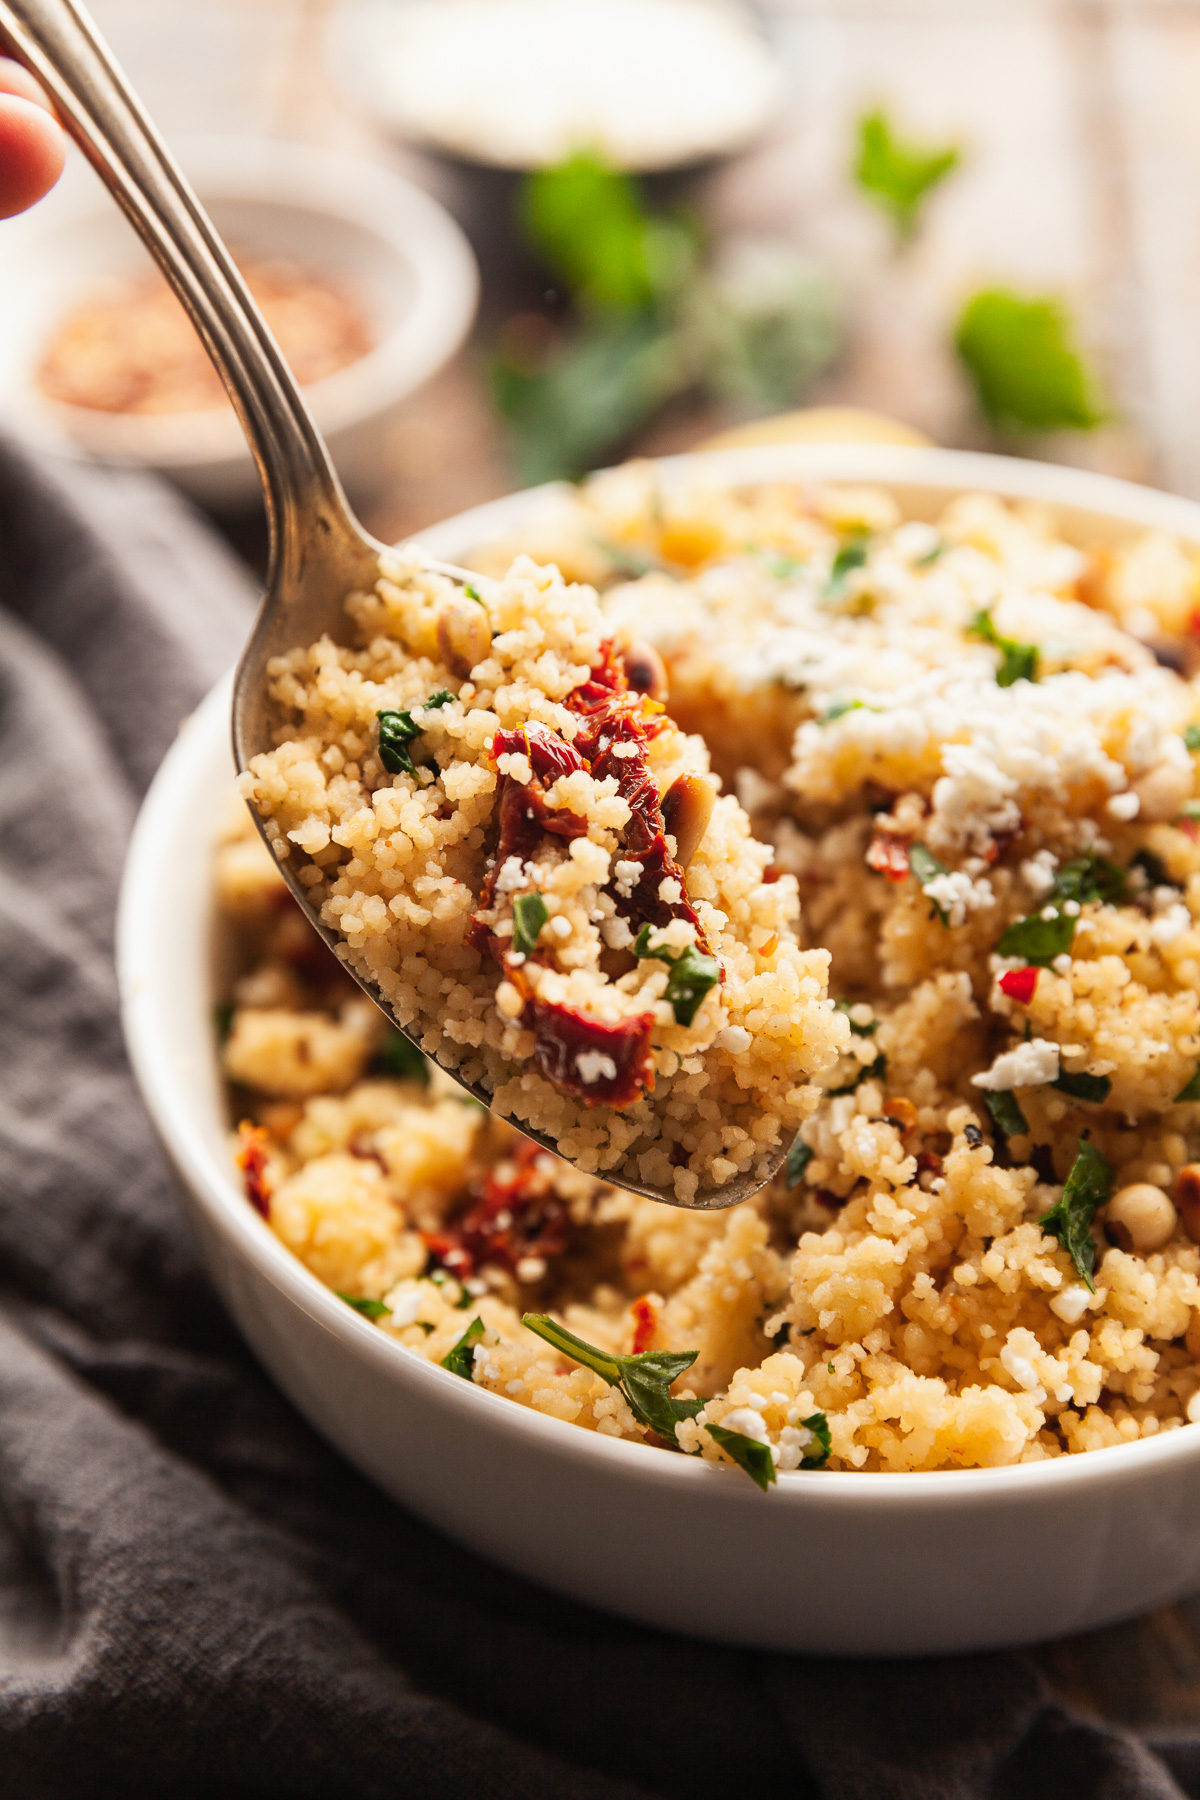 a spoon scooping out mediterranean couscous salad from a white bowl